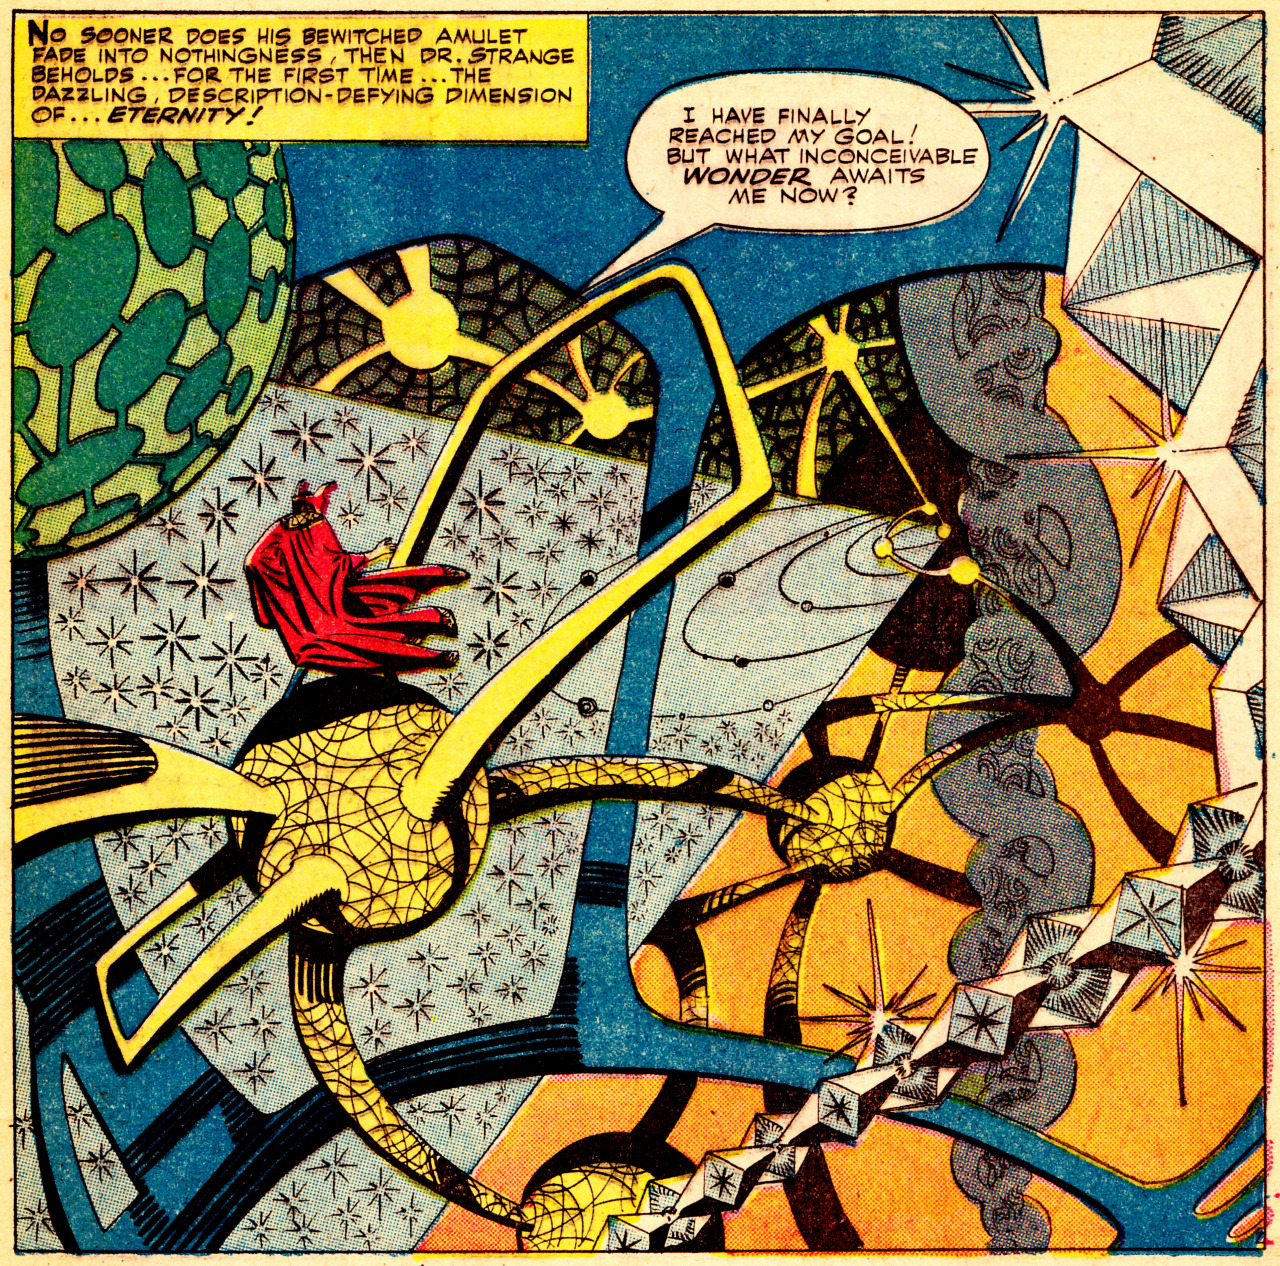 A panel from one of Steve Ditko's Dr. Strange comics from the 1960s.